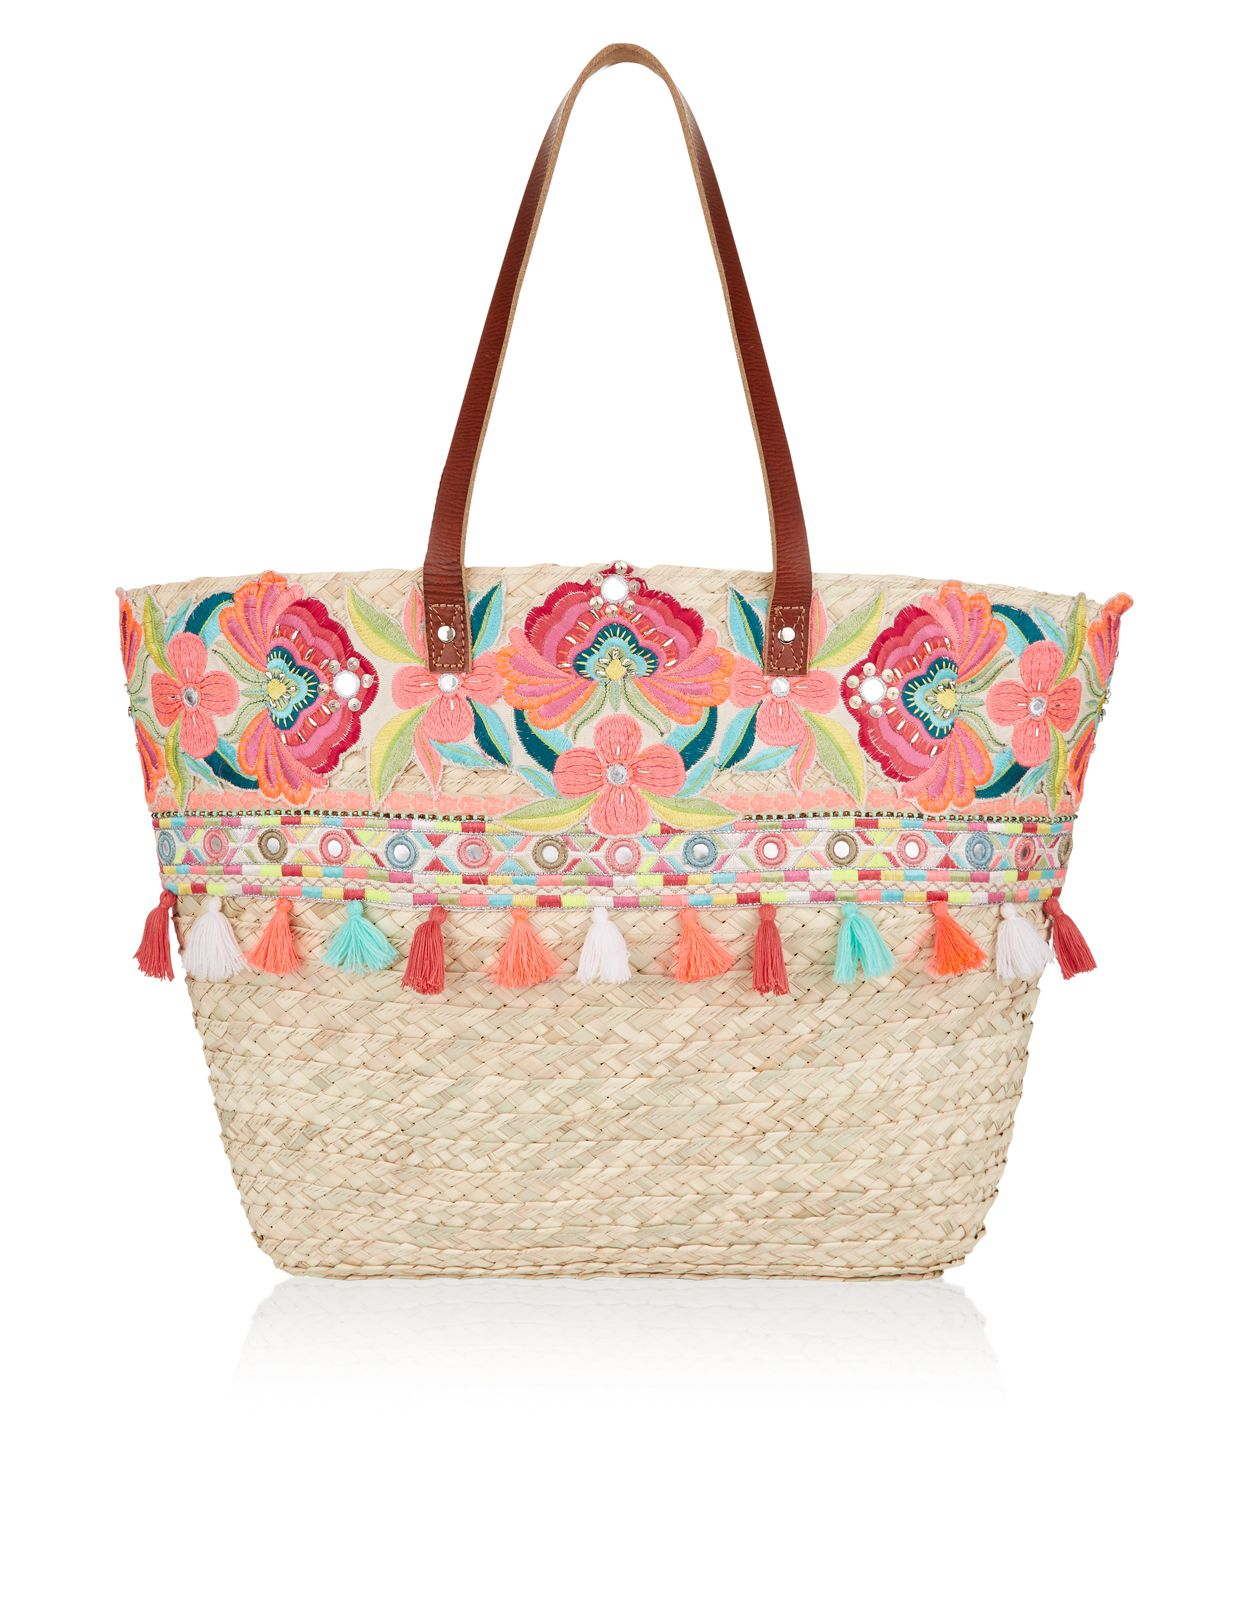 For Bali Straw Embellished Beach Tote Bag By Accessorize At Style